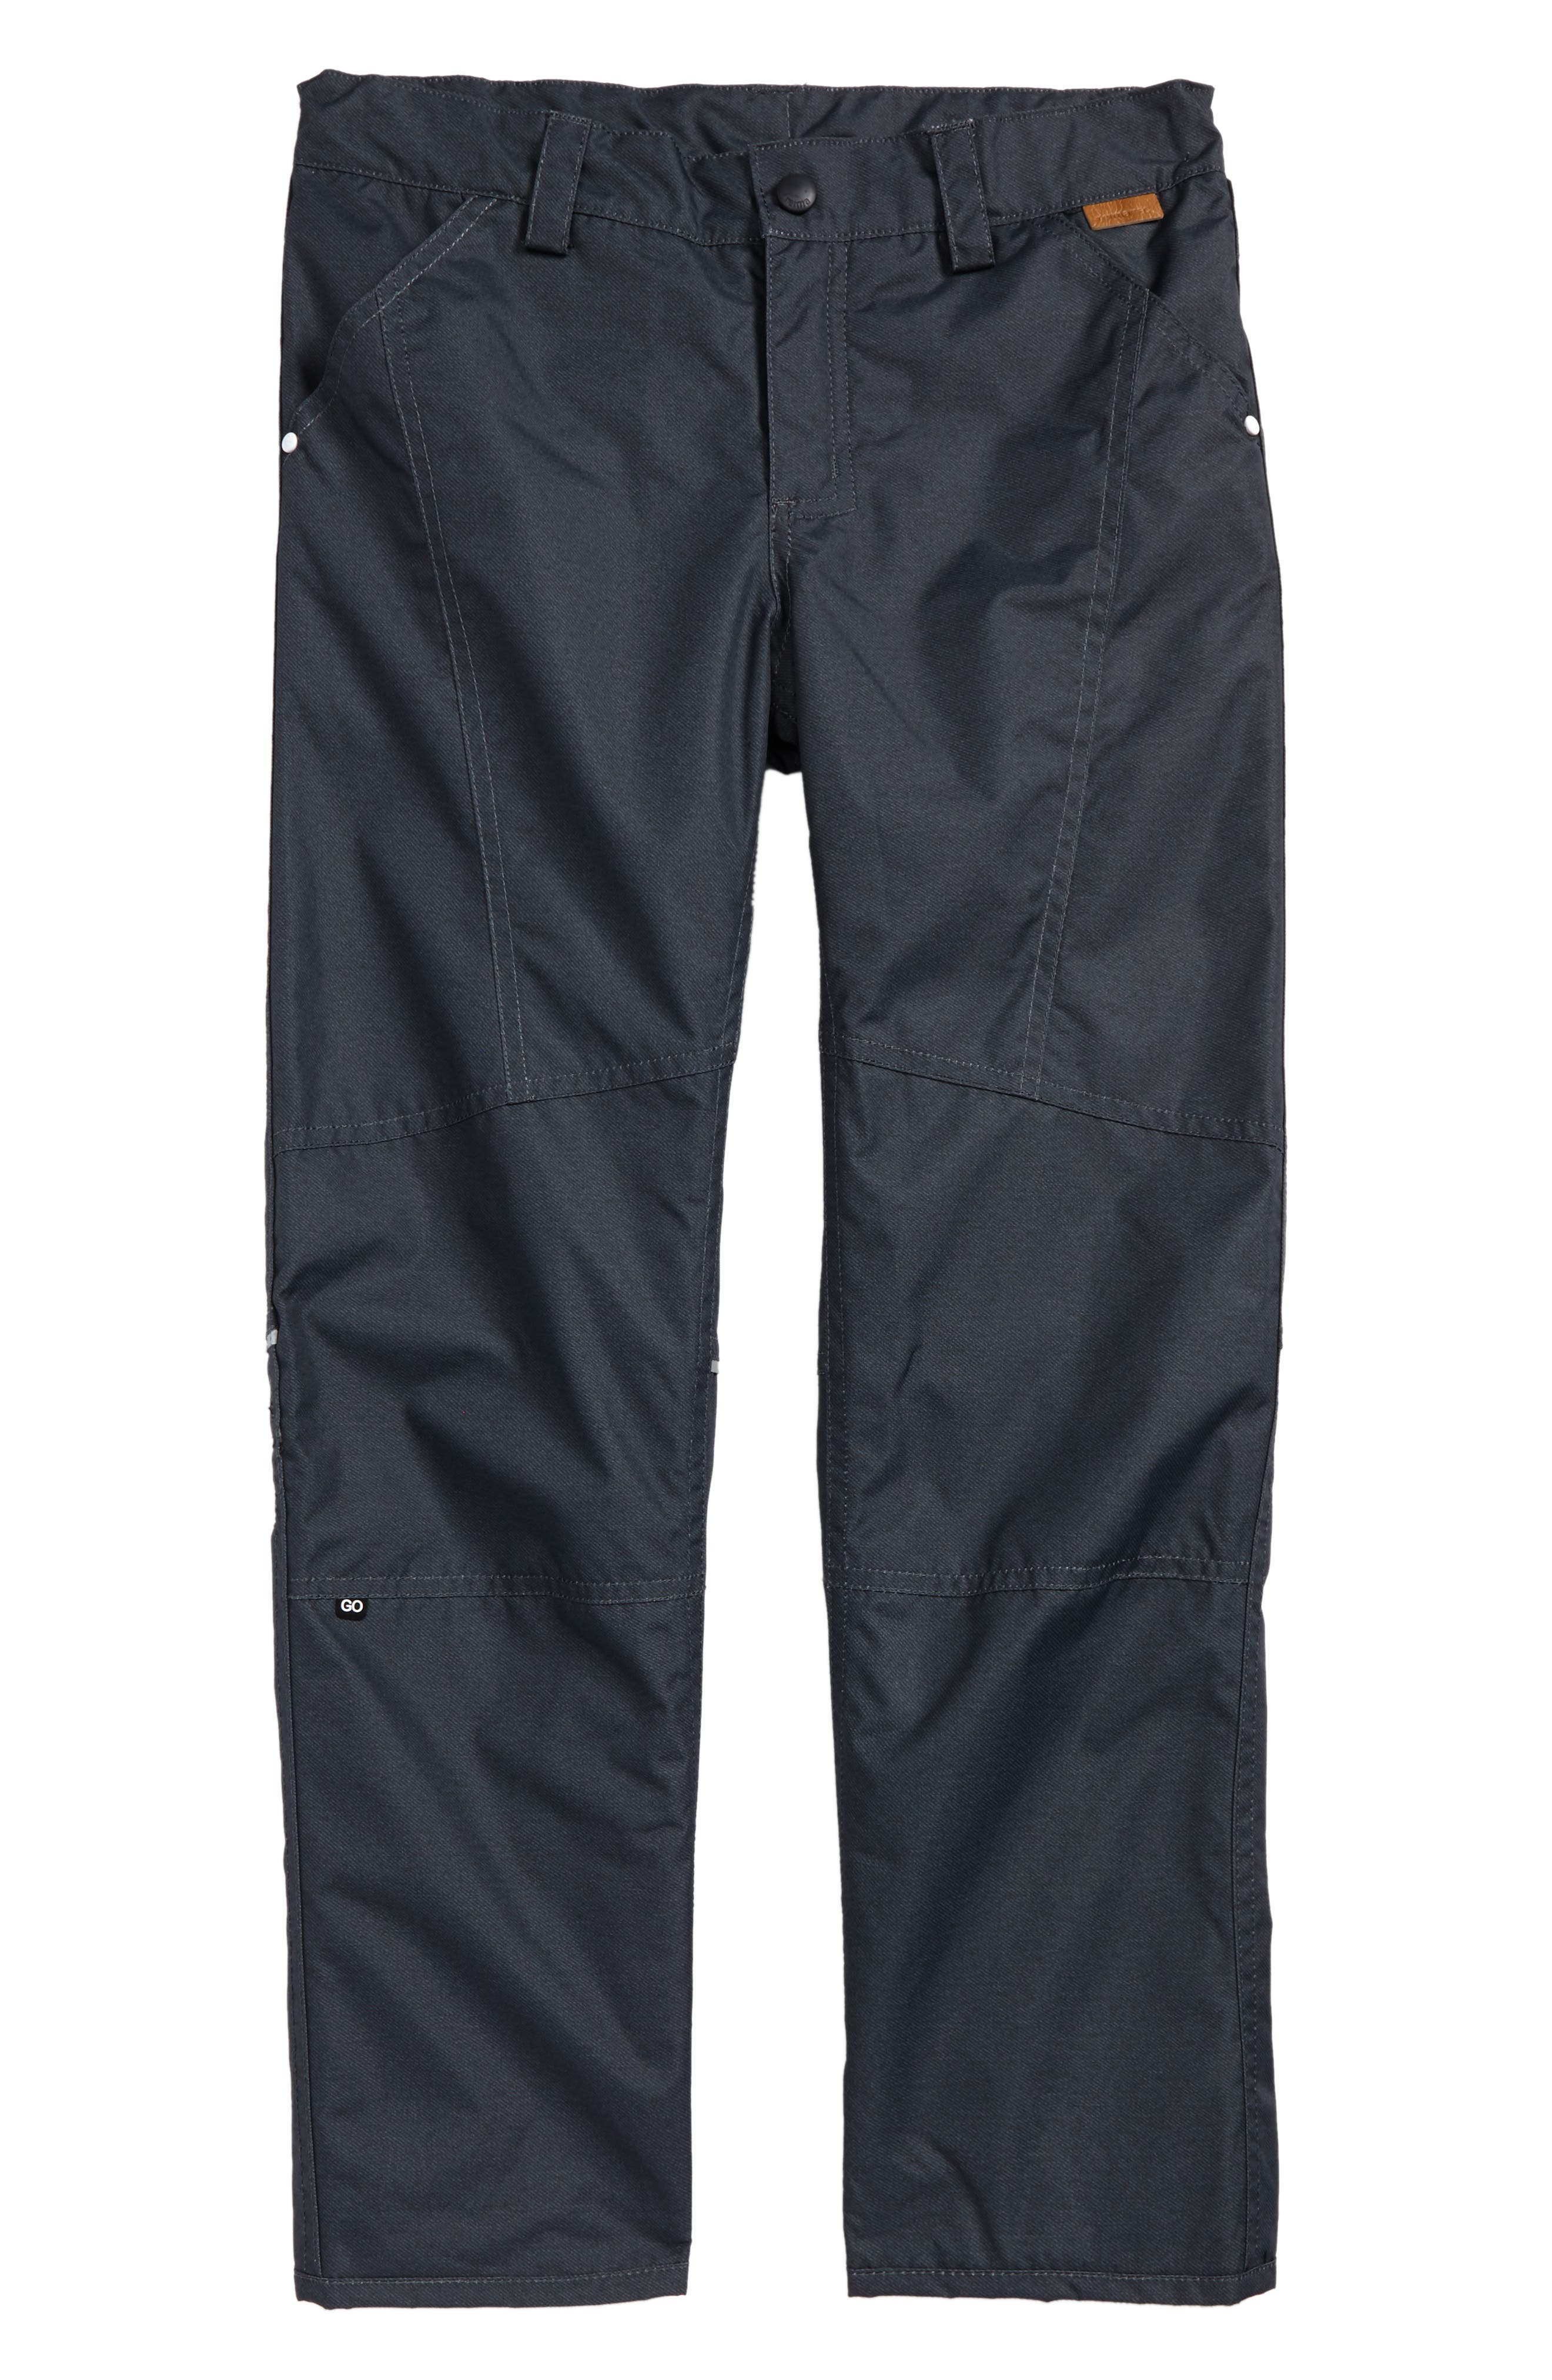 Main Image - Reima Reimatec® Waterproof Pants (Big Boys)